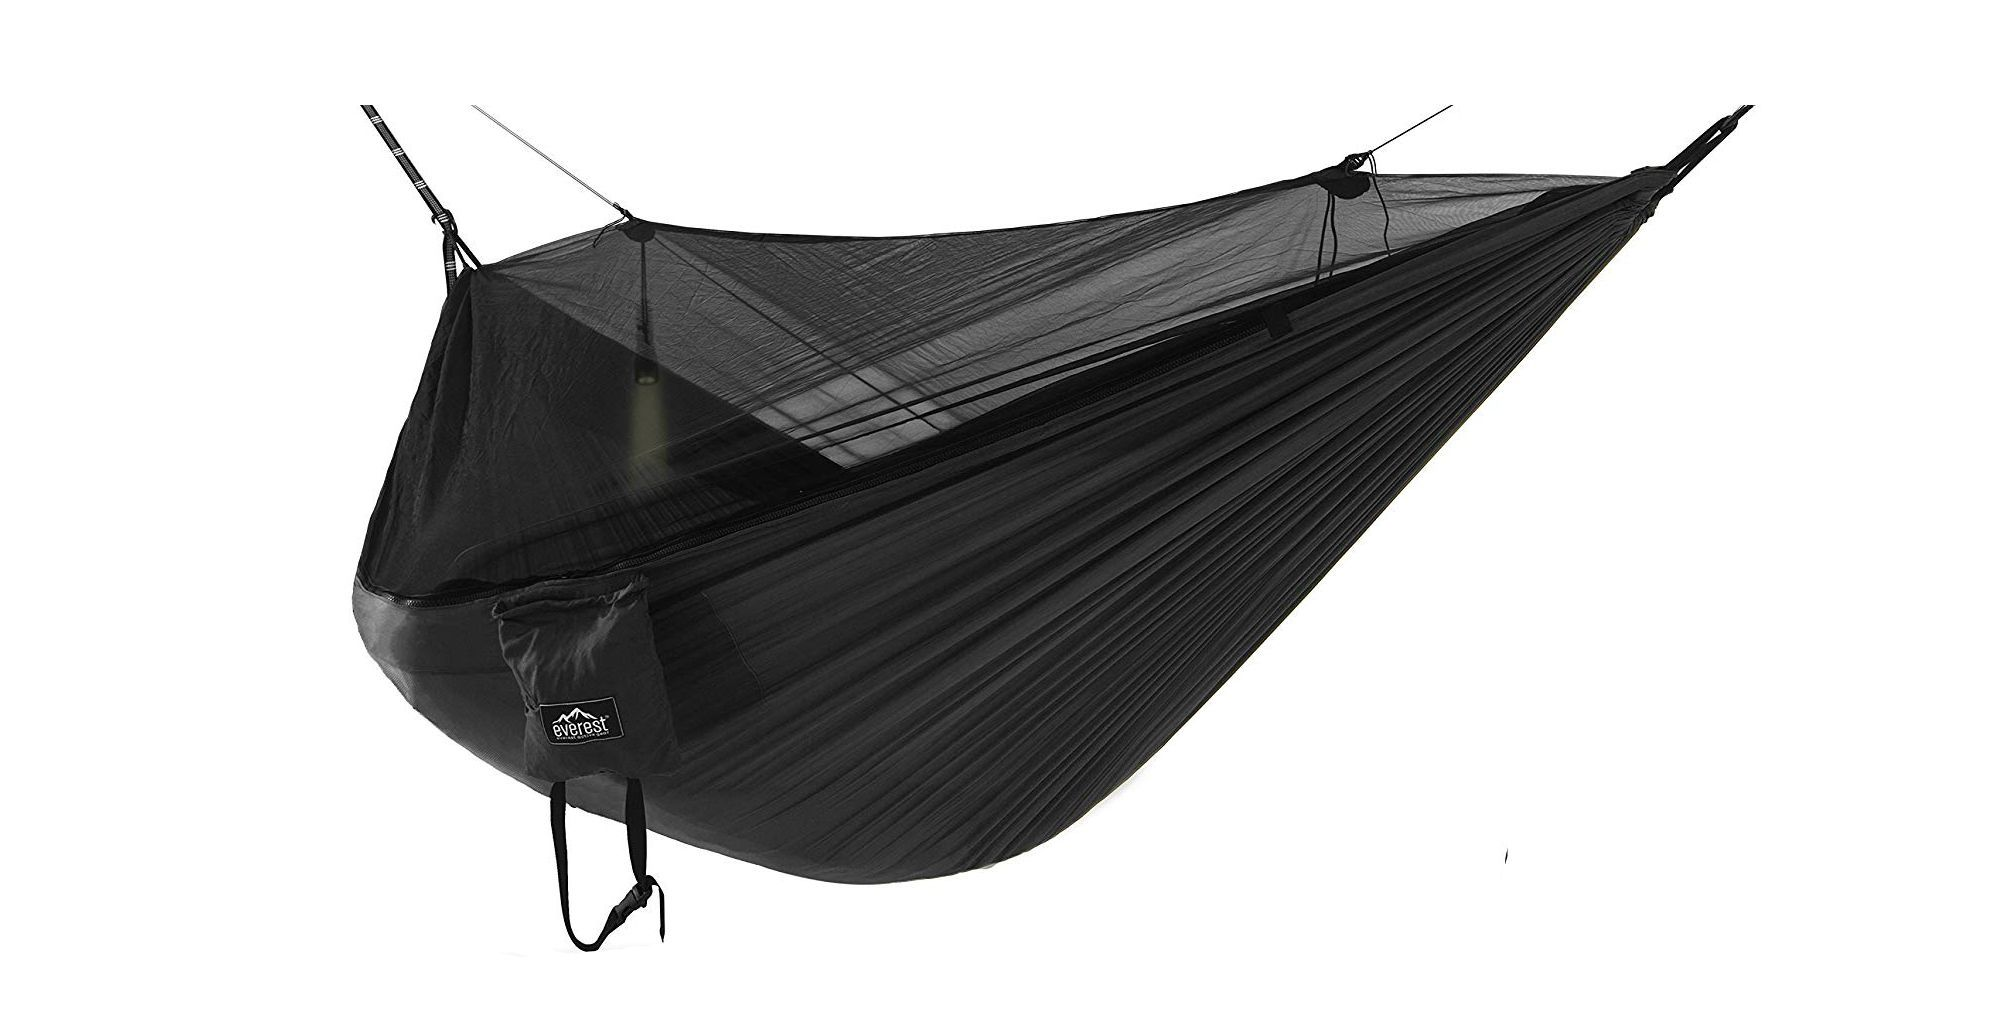 The Best Hammocks For Camping And Backpacking Rodeo Bundling 3 Maroon S